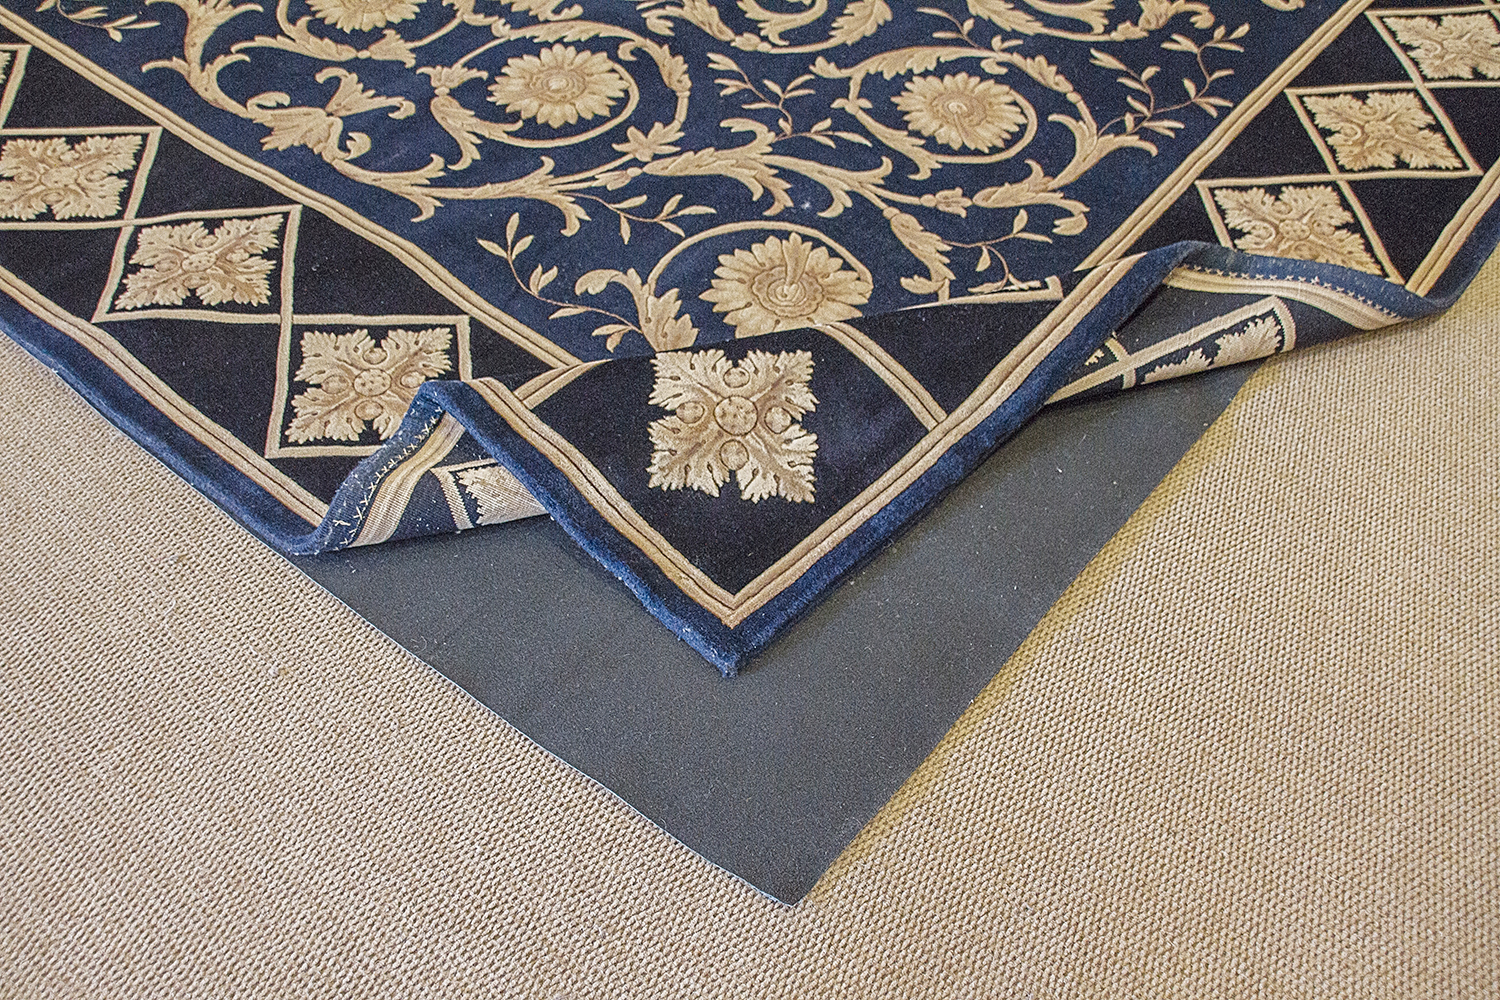 Carpet & Rug Anti-slip Underlay Mats -